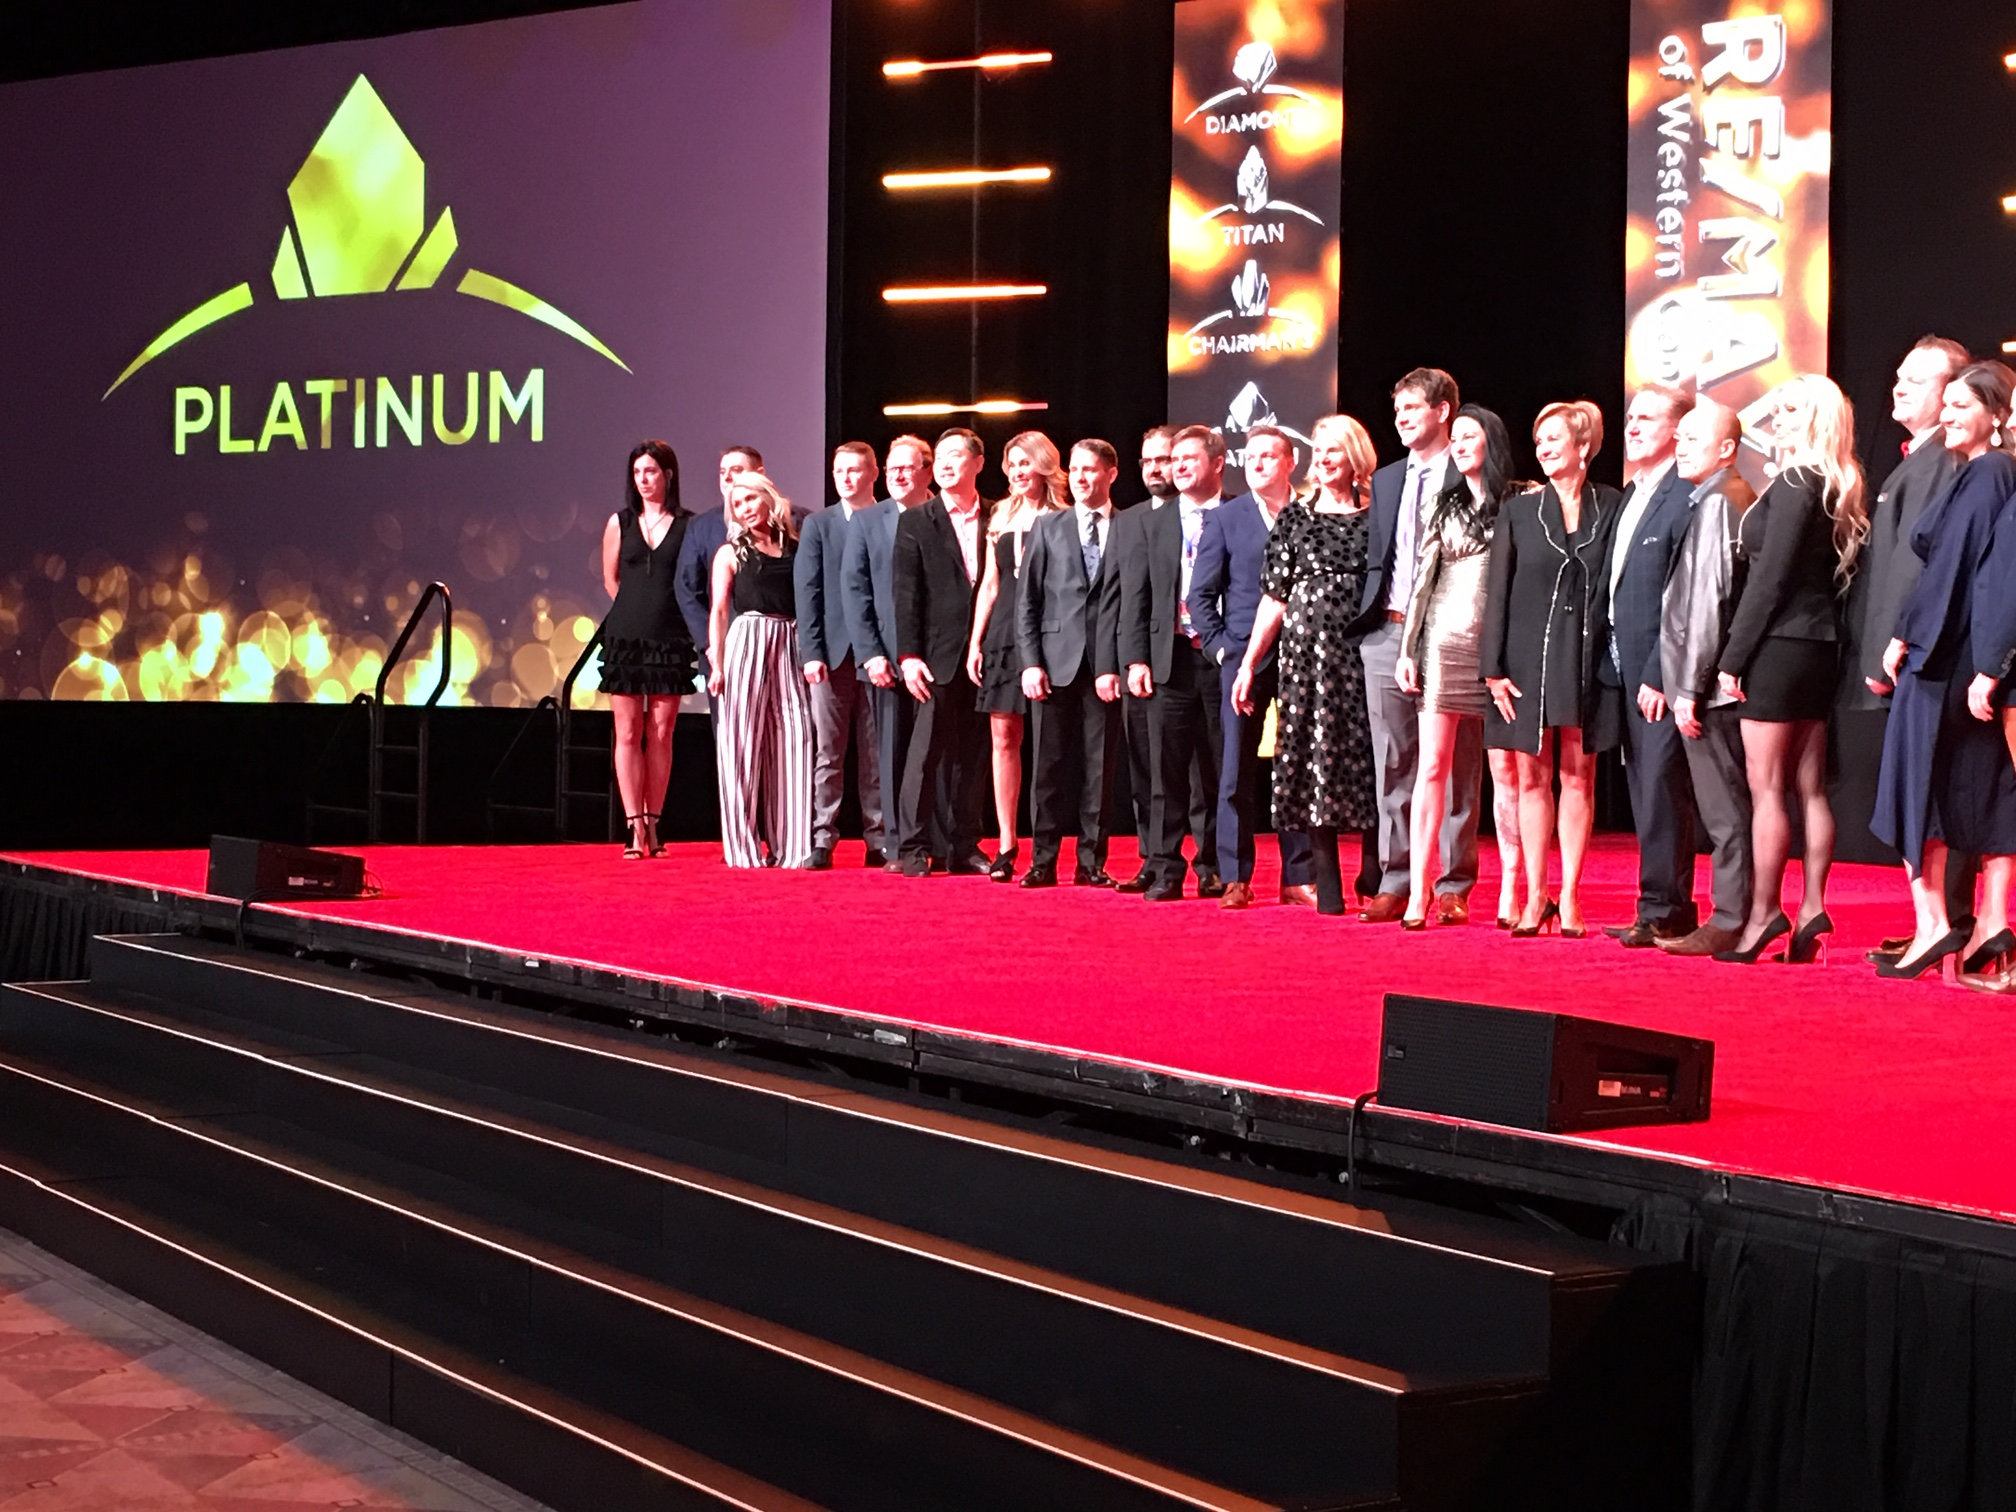 Platinum Awards in Las Vegas - Lotus Yuen